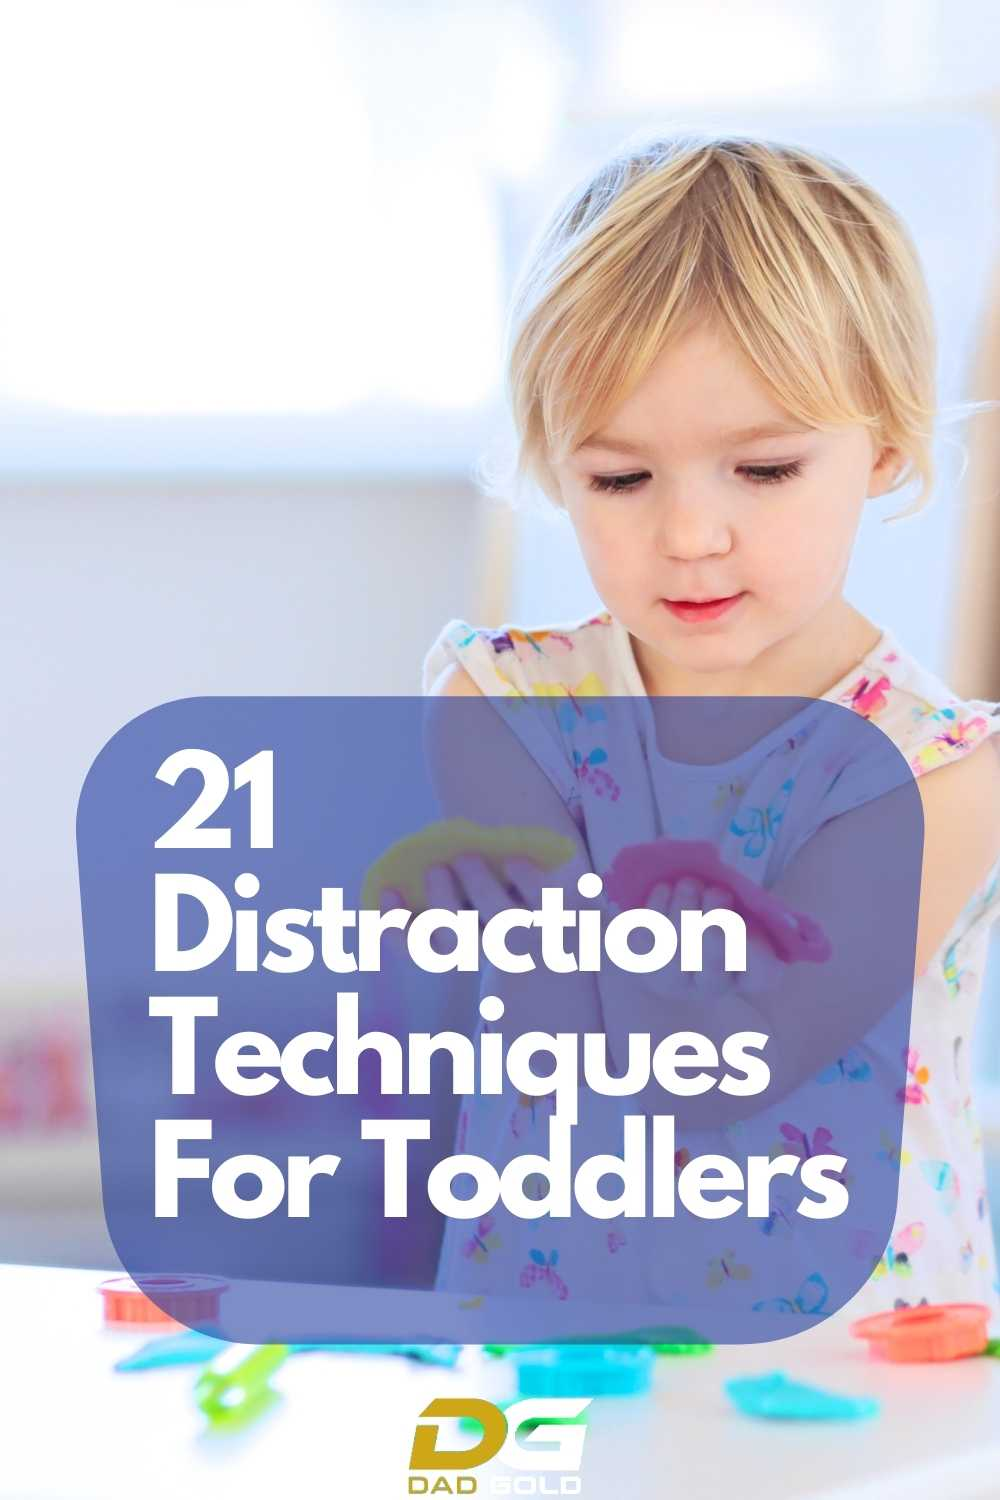 21 Distraction Techniques For Toddlers